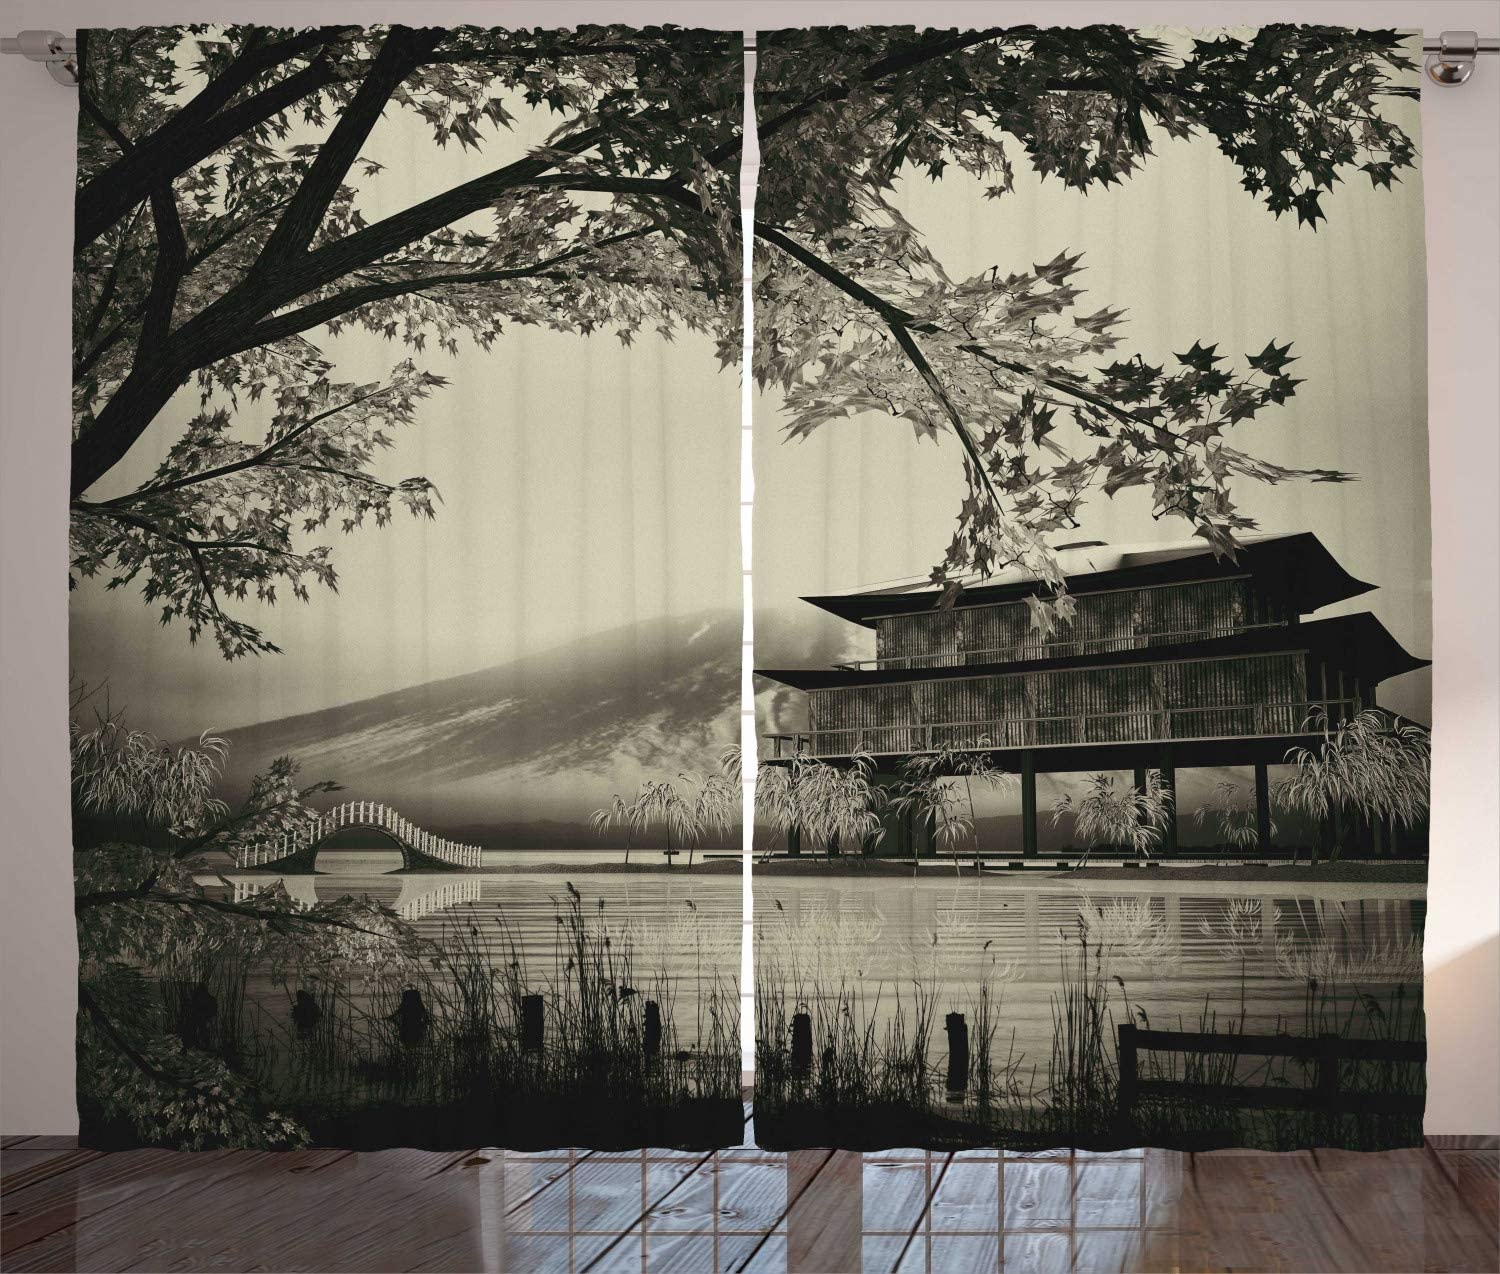 Ambesonne Asian Curtains, Long Exposure Building Traditional Picture Illustration, Living Room Bedroom Window Drapes 2 Panel Set, 108X 96Inches, Sepia